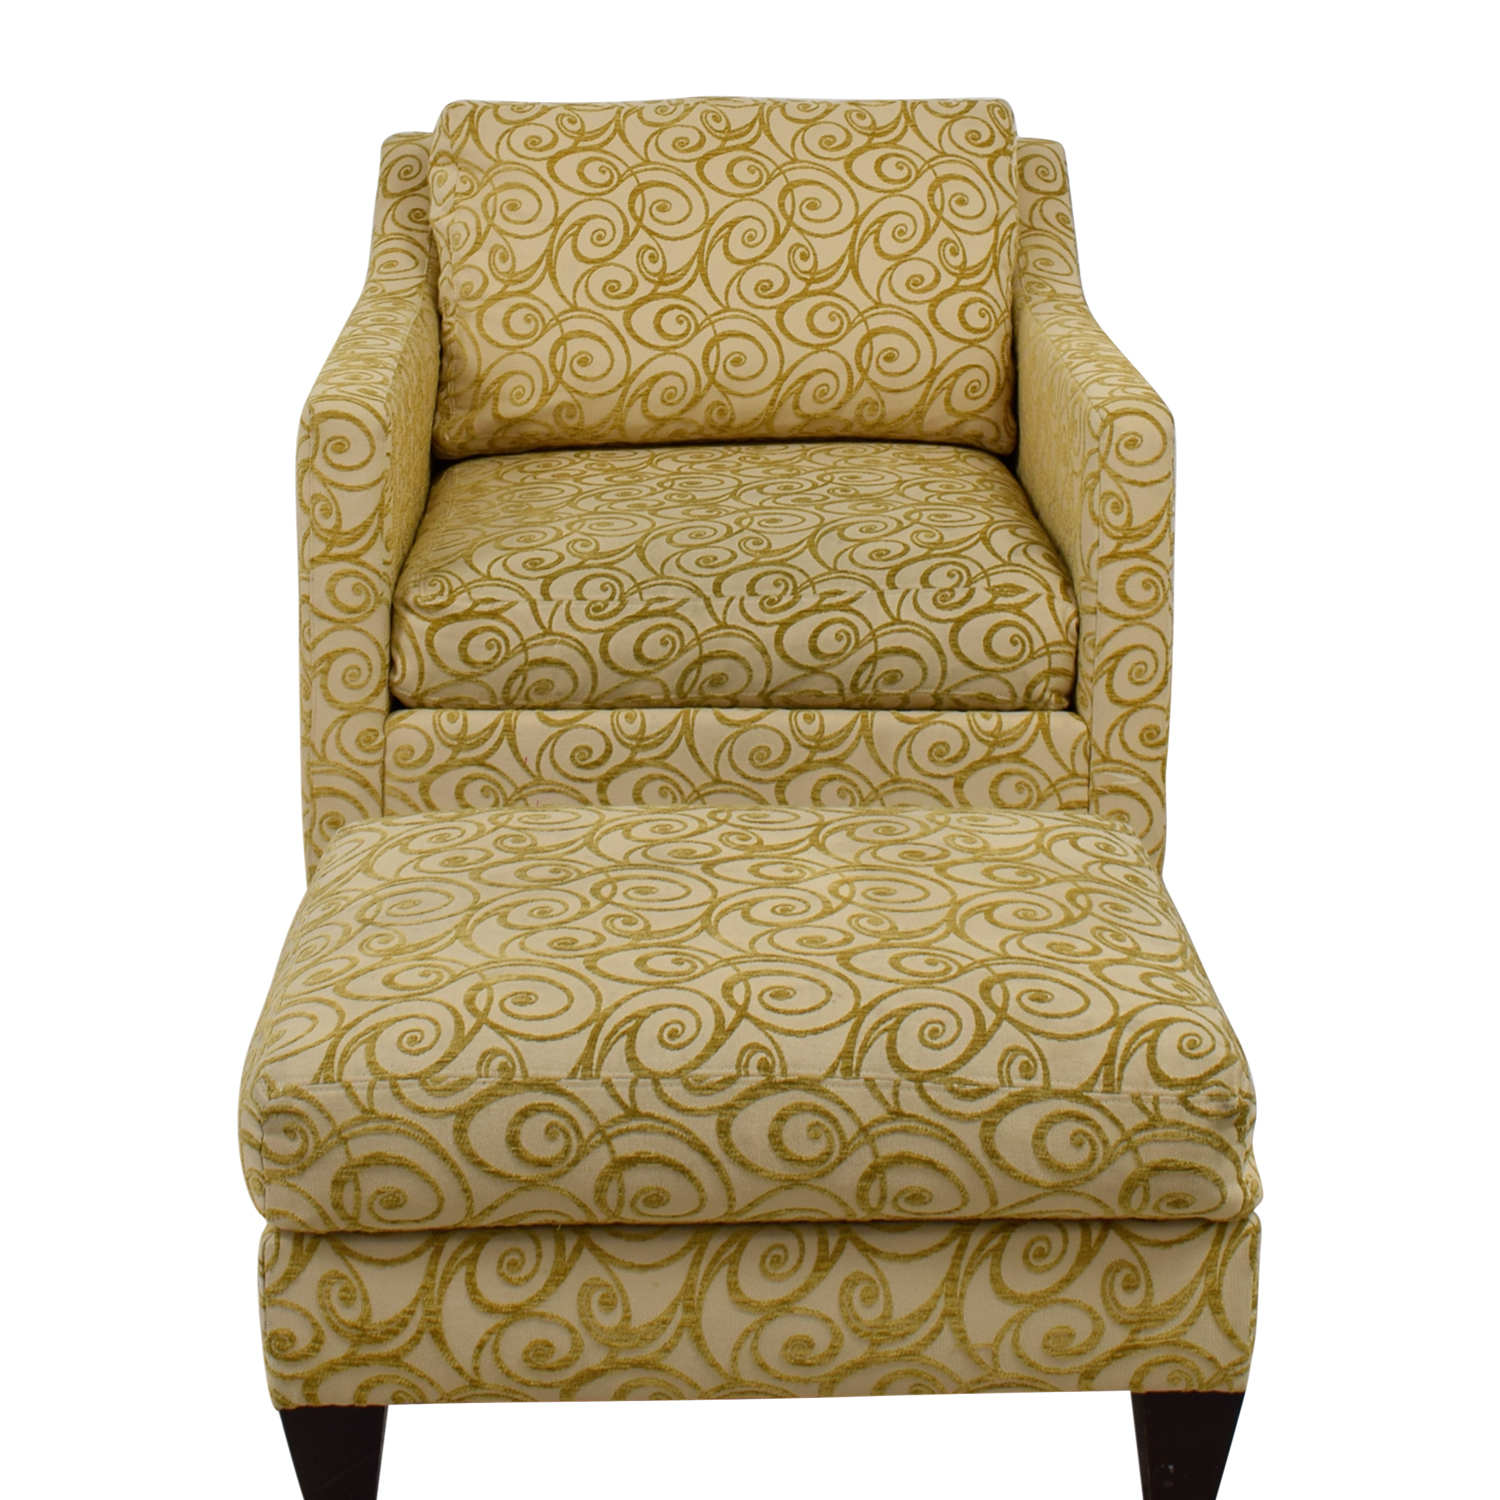 Ethan Allen Ethan Allen Beige and Gold Monterey Chair and Ottoman Chairs